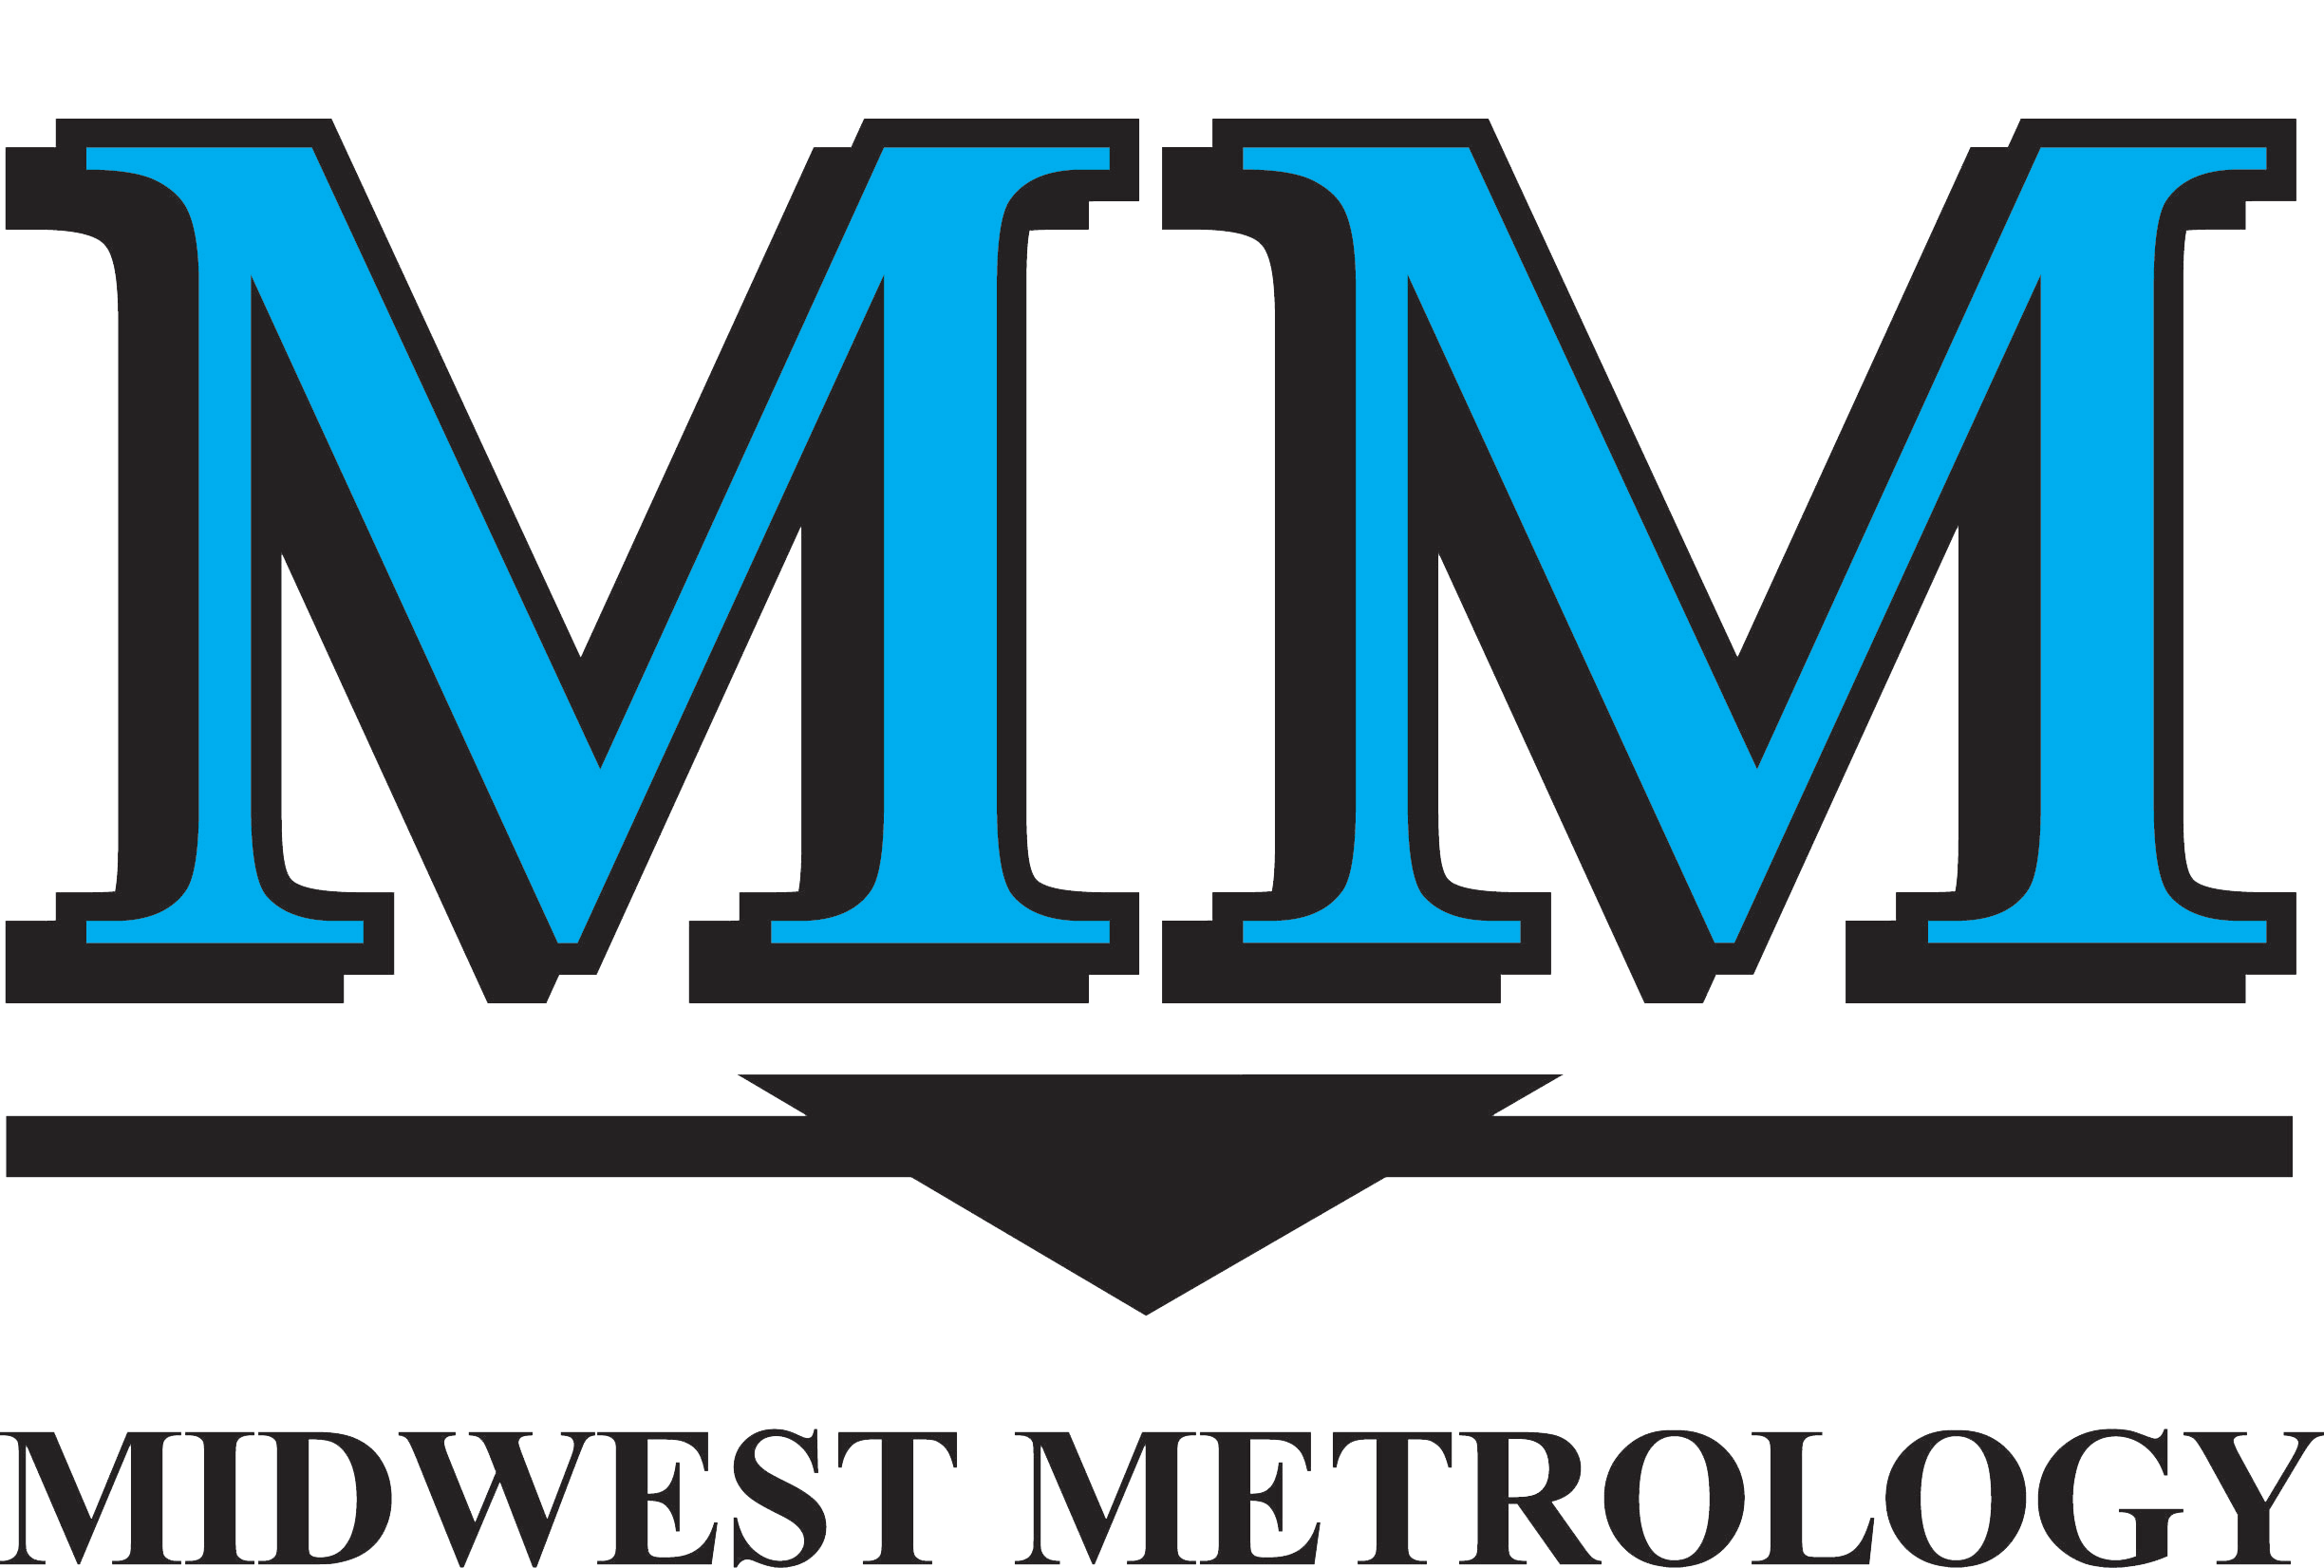 Midwest Metrology, LLC